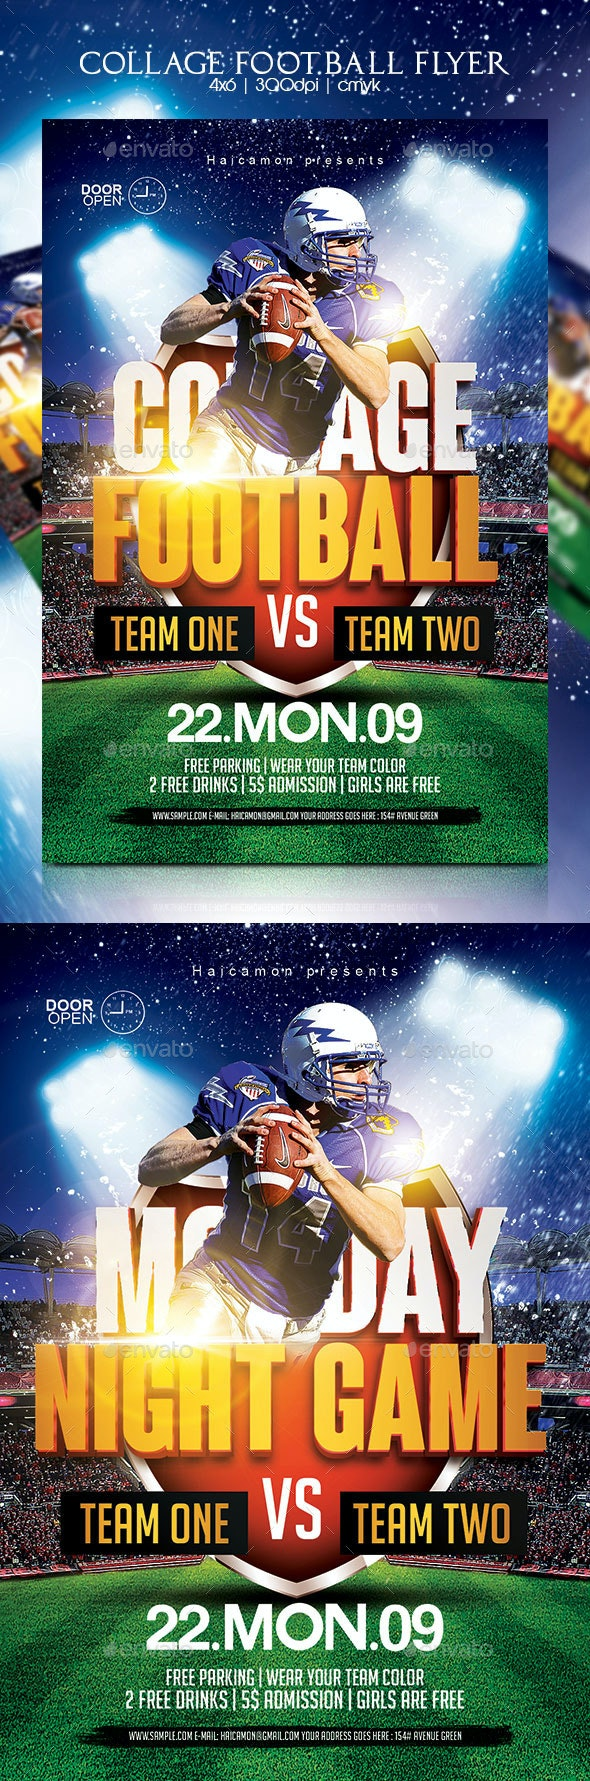 Collage Football Flyer - Sports Events